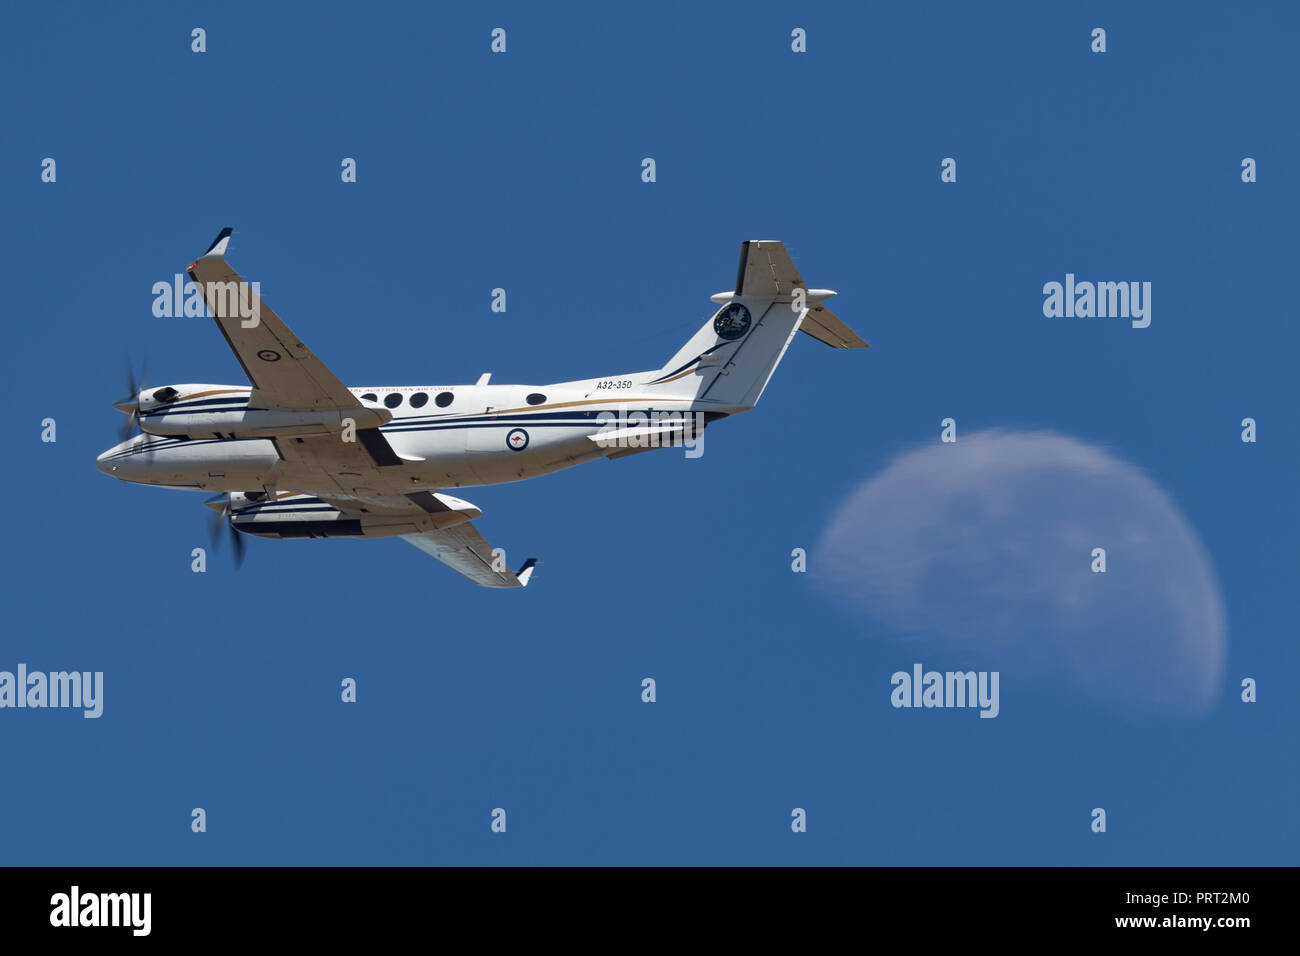 Royal Australian Air Force (RAAF) Beechcraft King Air 350 A32-350 from 32 Squadron based at RAAF East Sale in Victoria. - Stock Image